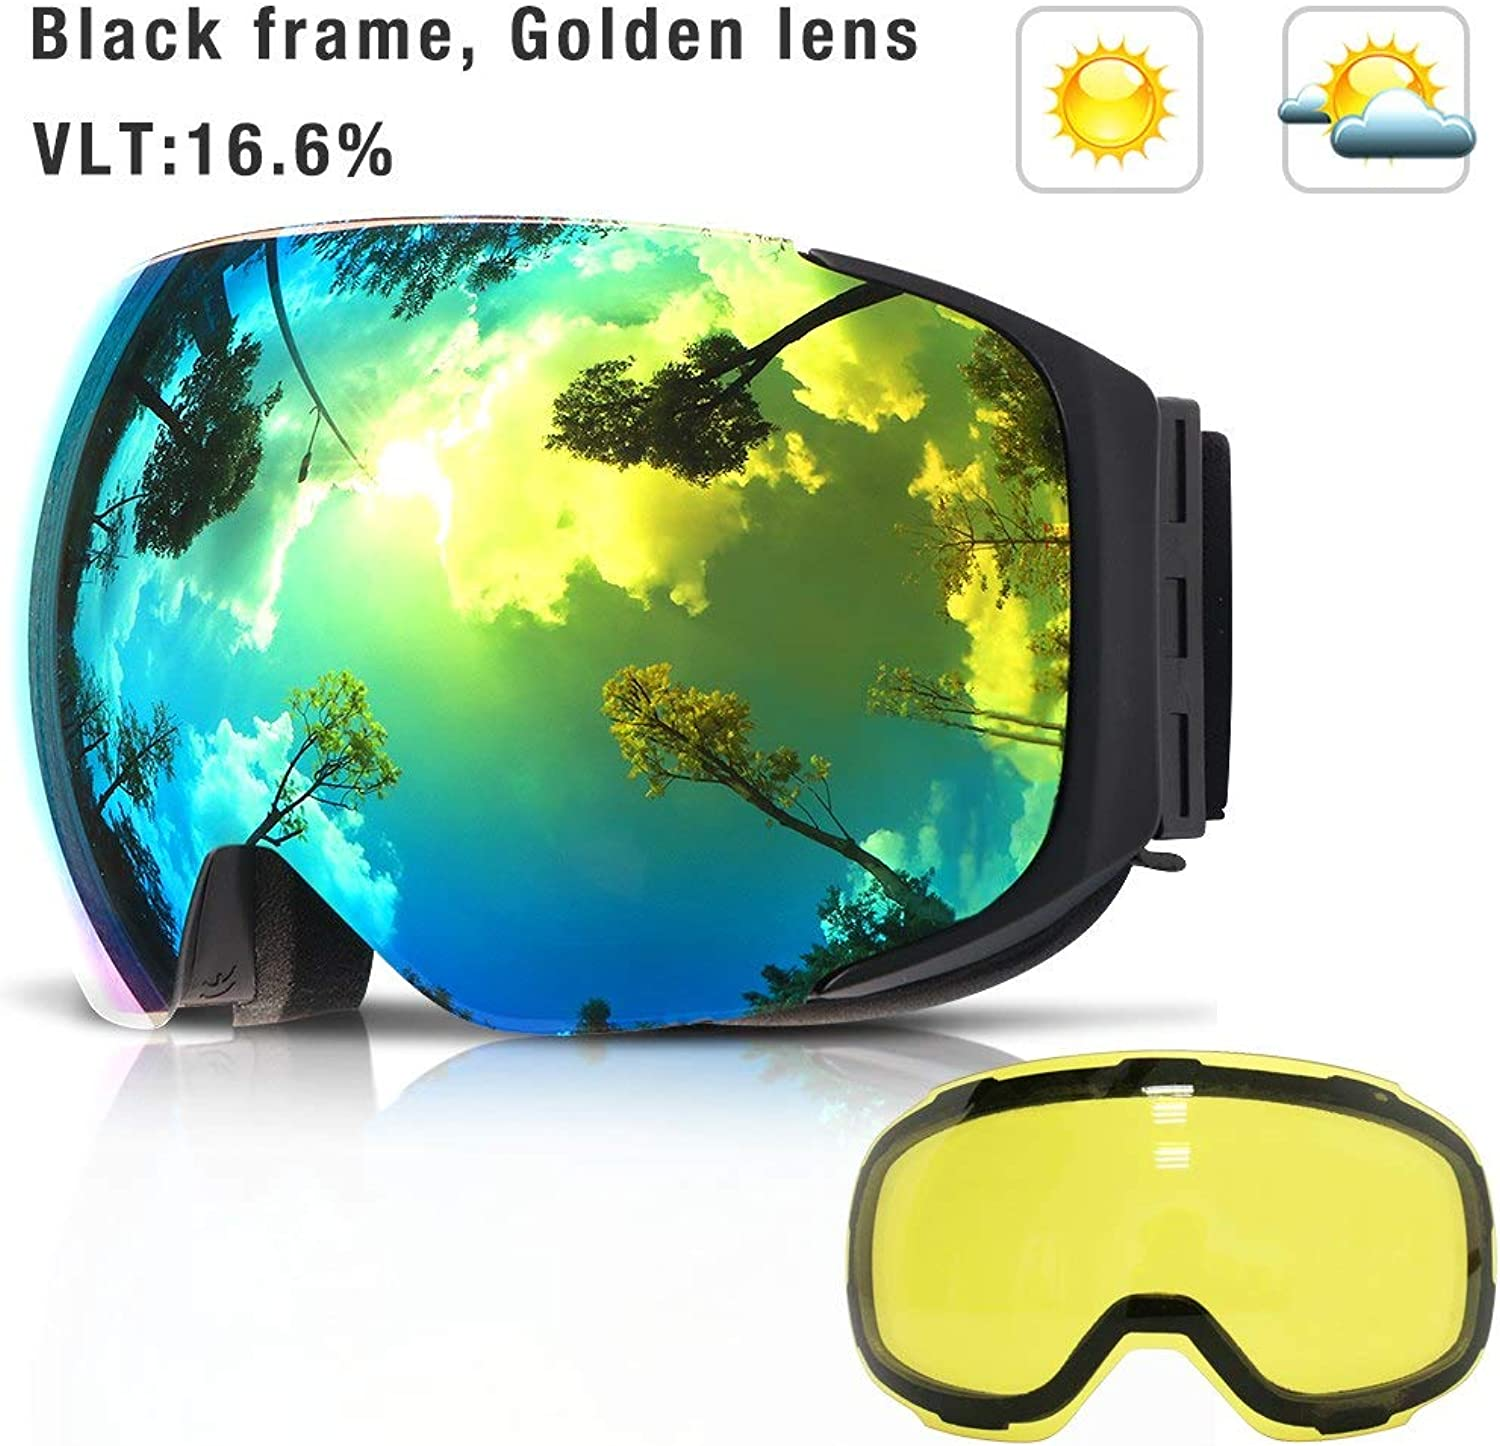 UV400 Predection, Mirror Coating INF COPOZZ Magnetic Ski Goggles with Interchangeable Yellow Lens Anti-fog and UV400 Predection Snowboard Goggles for Adult Men Women